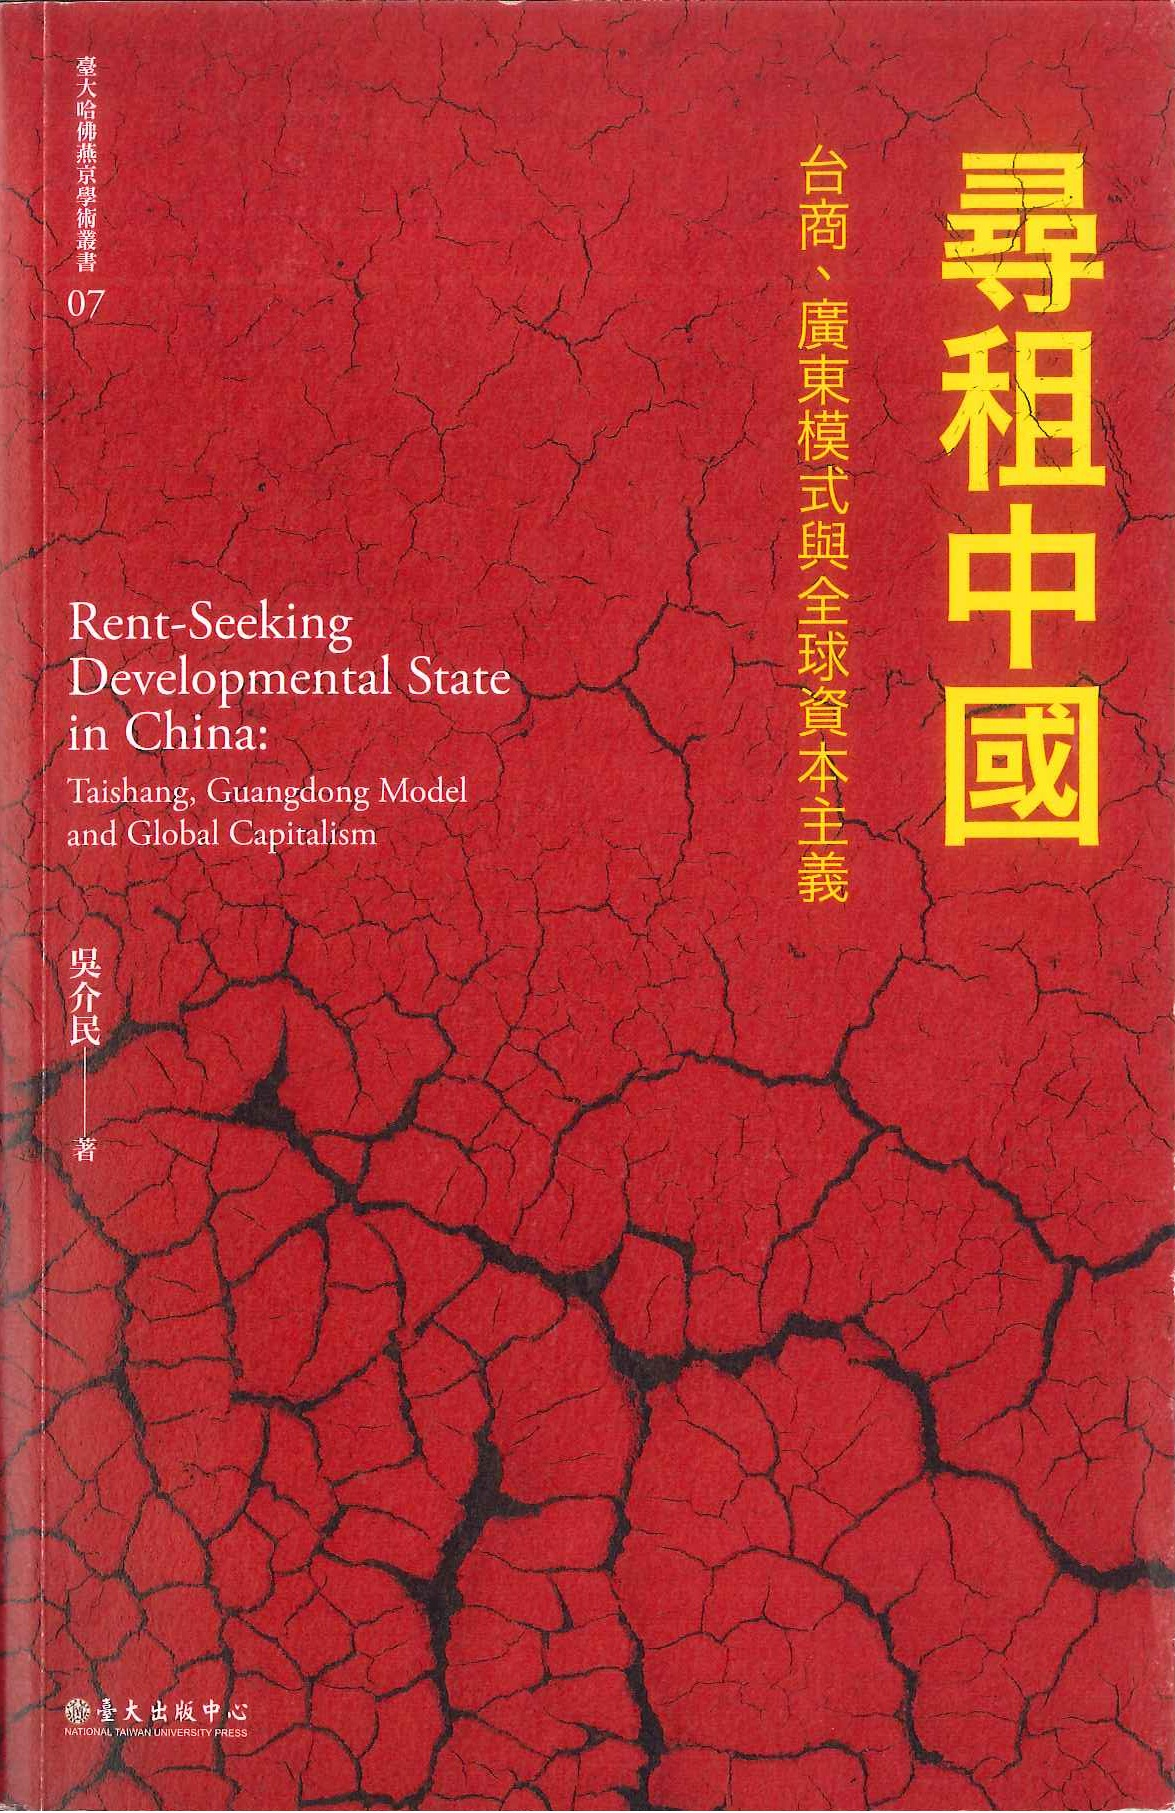 尋租中國:台商、廣東模式與全球資本主義=Rent-seeking developmental state in China: Taishang, Guangdong model and global capitalism